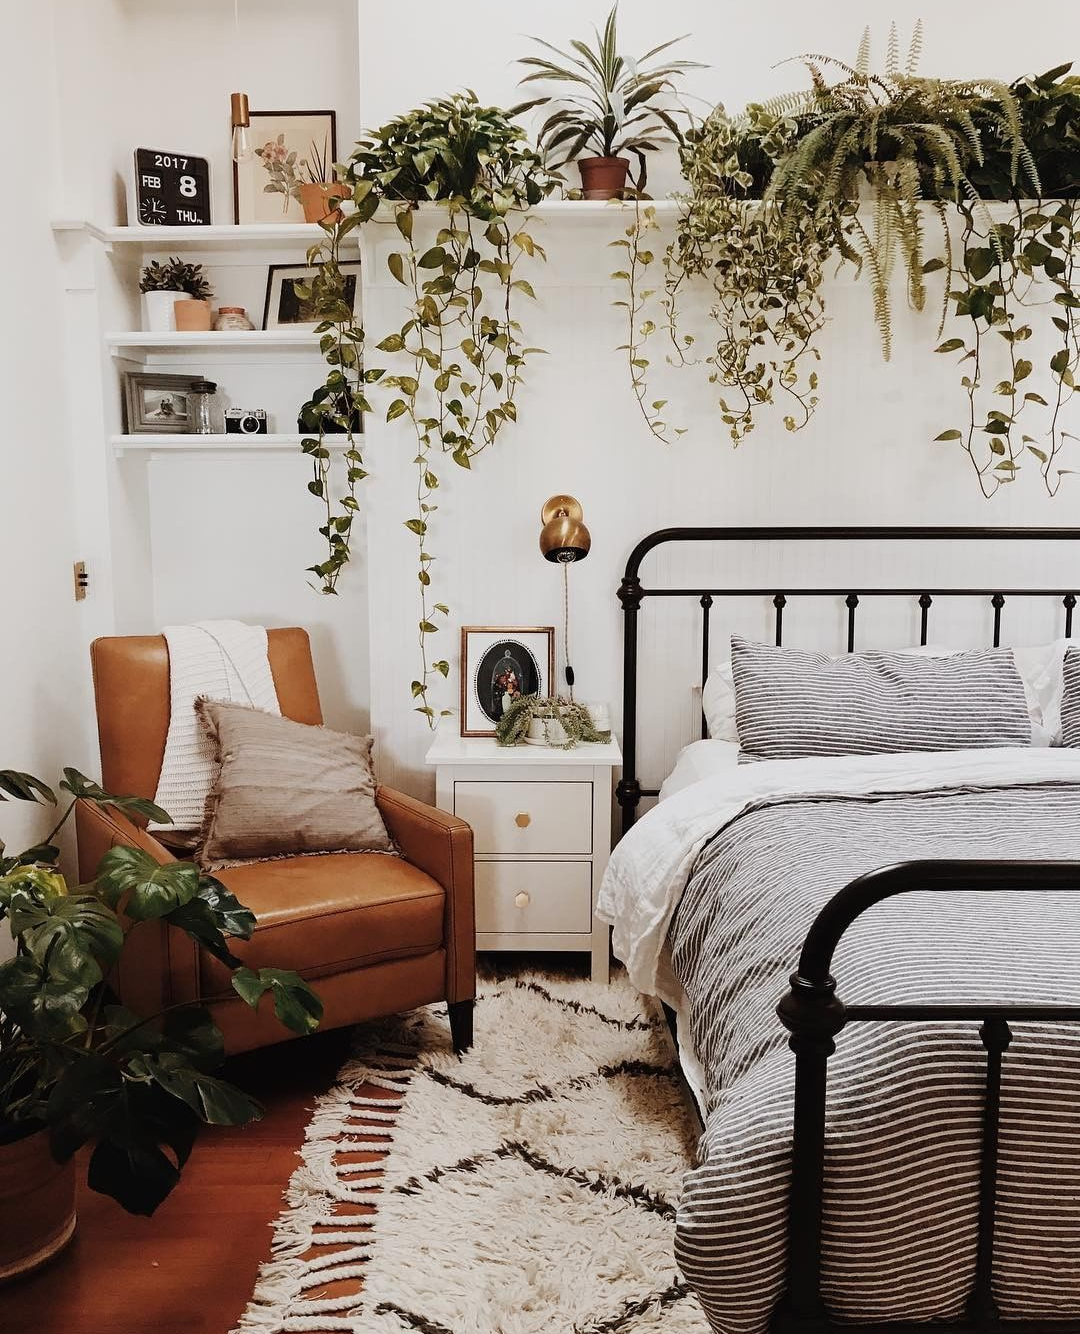 terrific cute bohemian bedroom ideas | Plant life, plants in bedroom, home decor, cute bedrooms ...